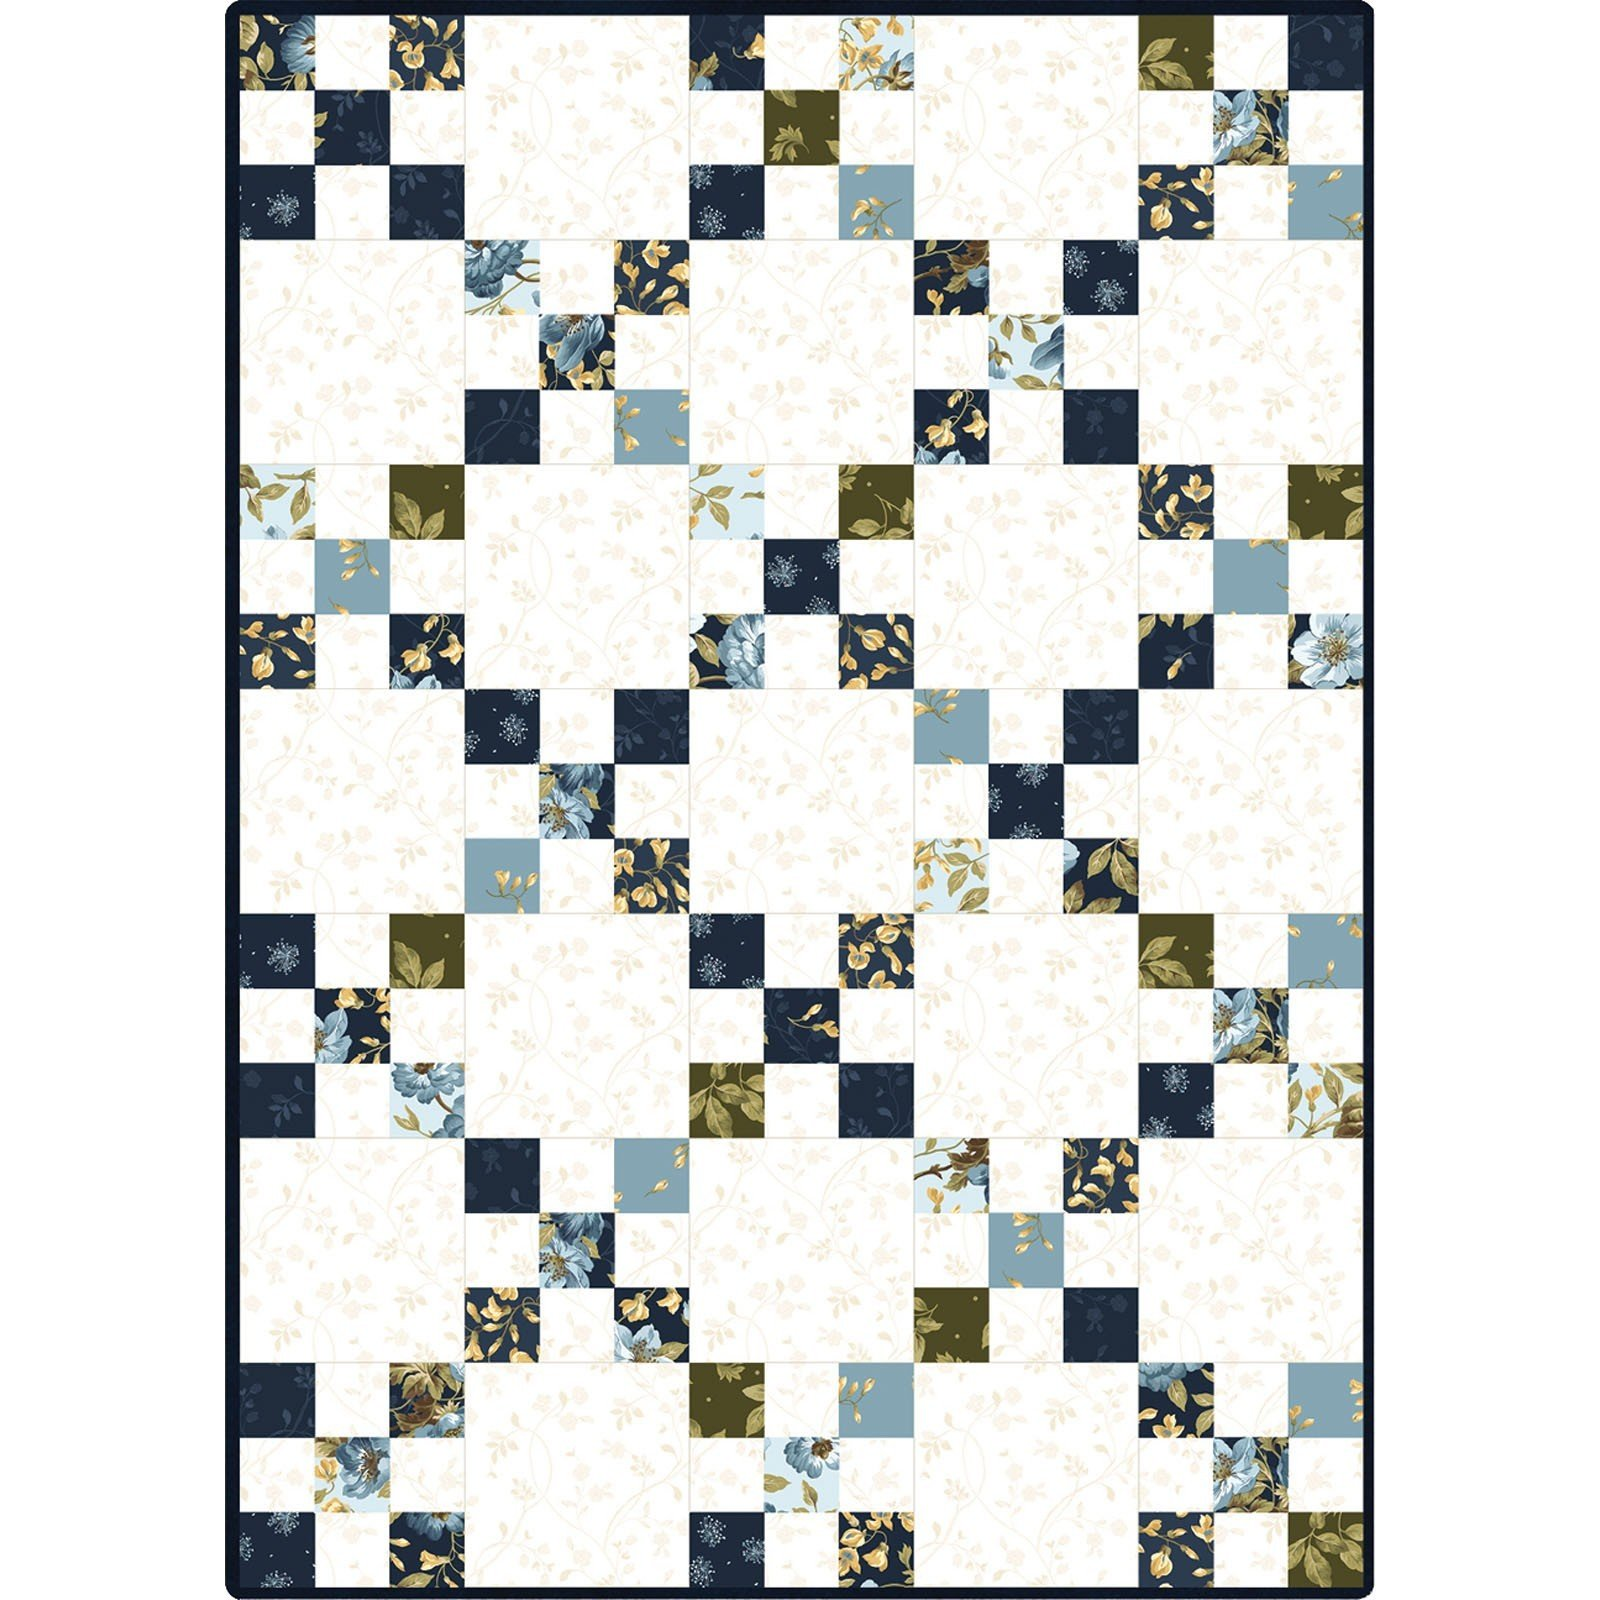 POD-MAS06-ENC Irish Chain Pod Quilt Kit English Country Side Maywood Studio